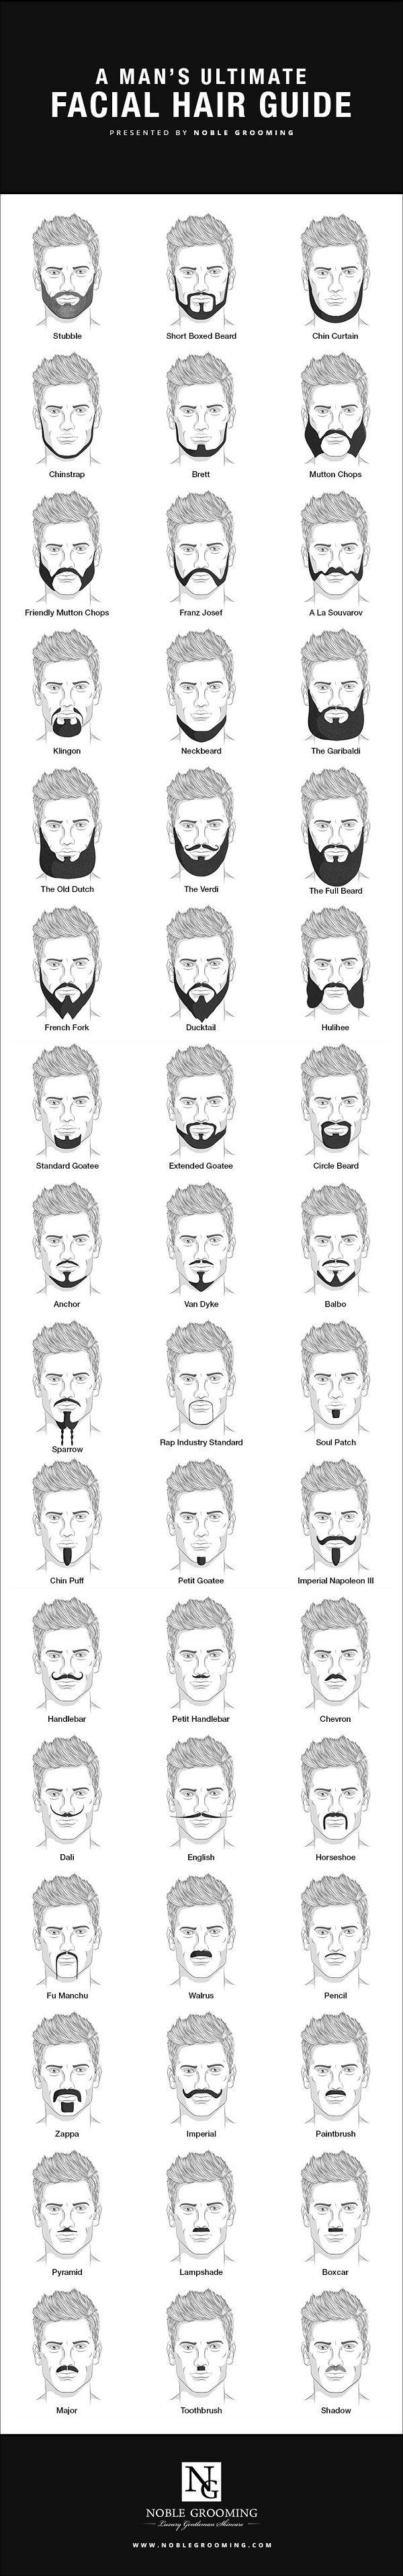 Infographic: The Ultimate Guide To Facial Hair Styles For Men - DesignTAXI.com